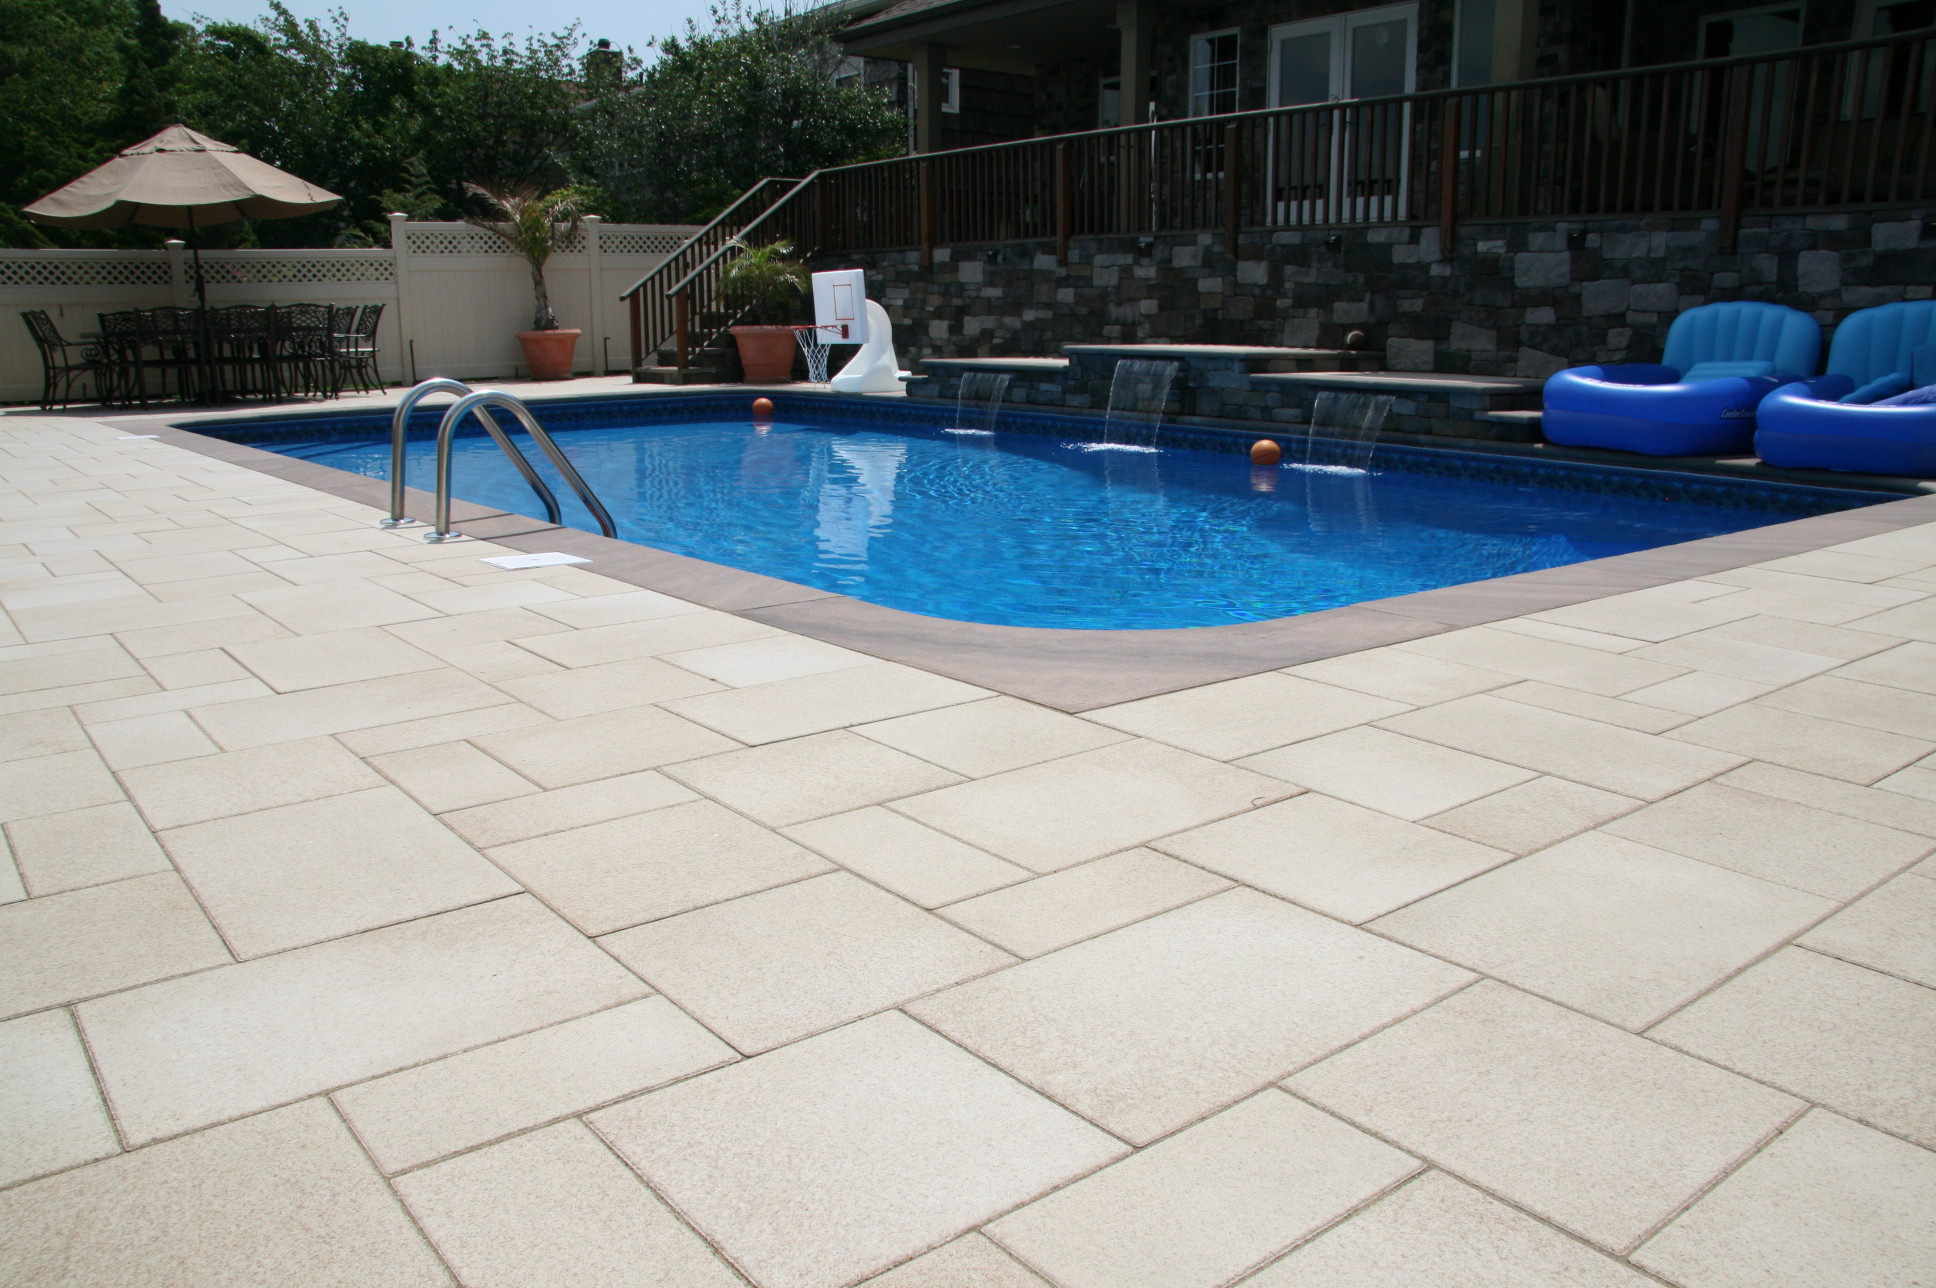 Landscape design with pool area in Long Island, NY